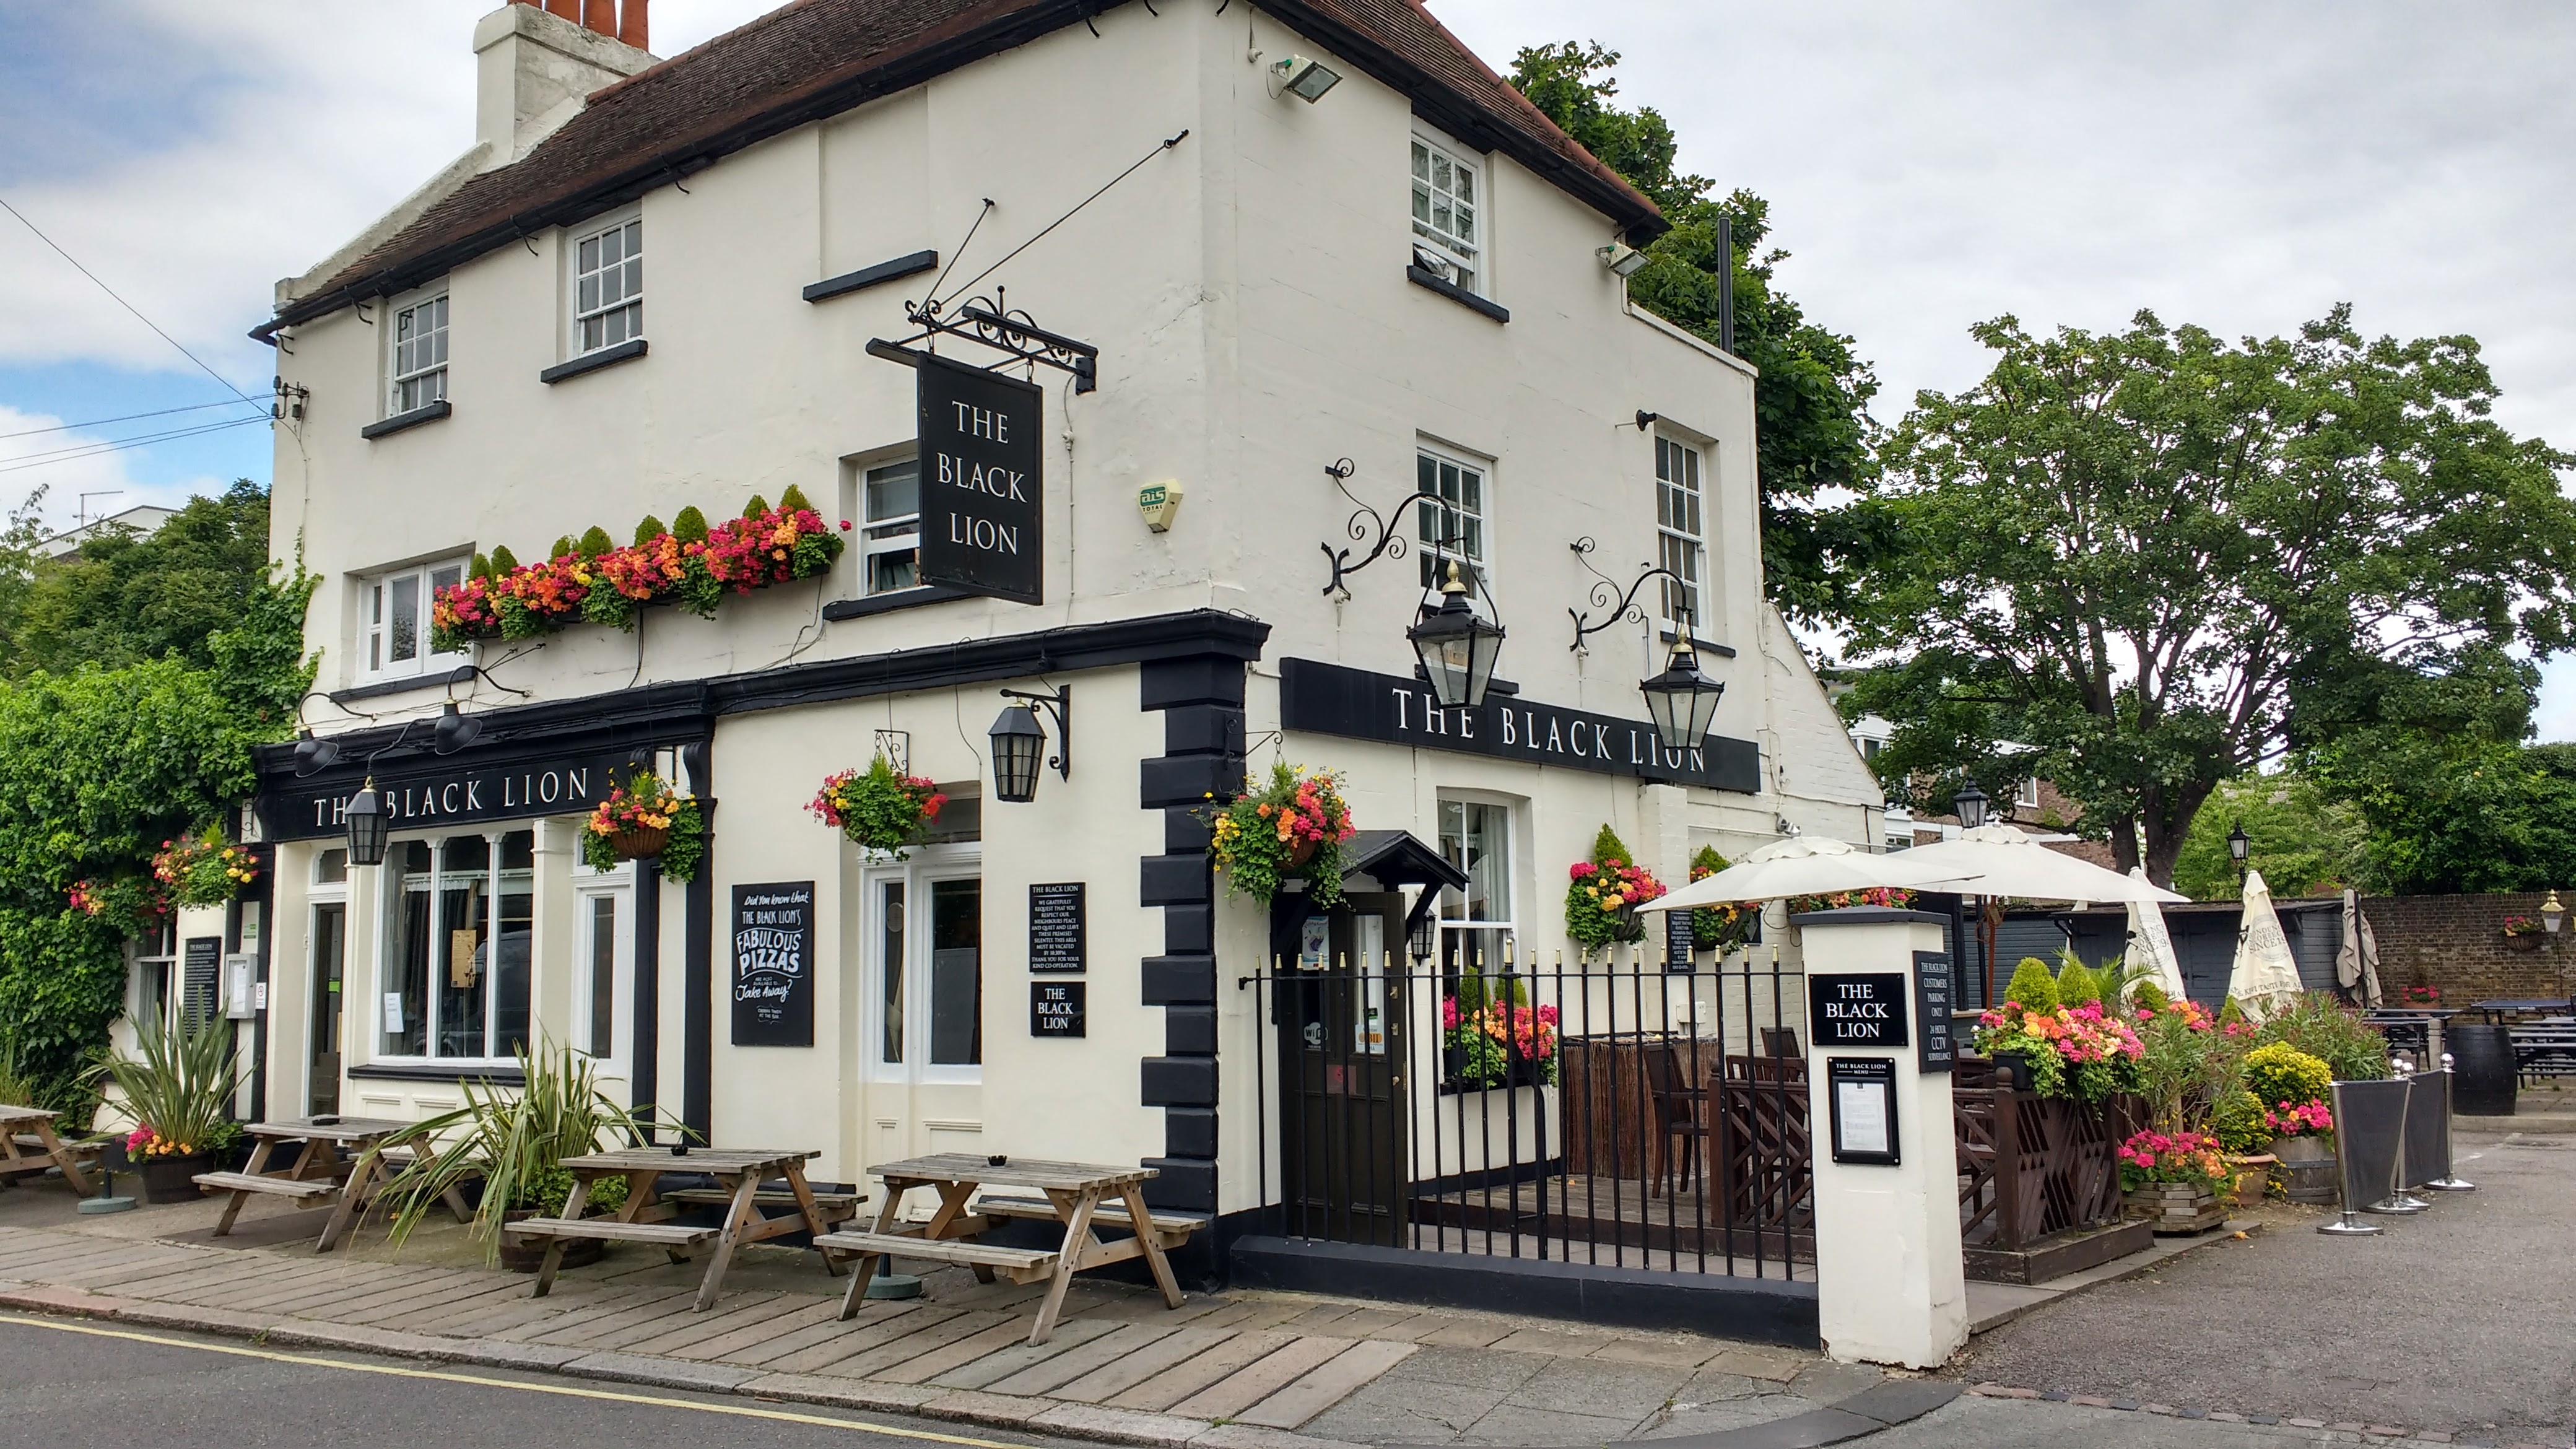 Image result for The Black Lion hammersmith pub